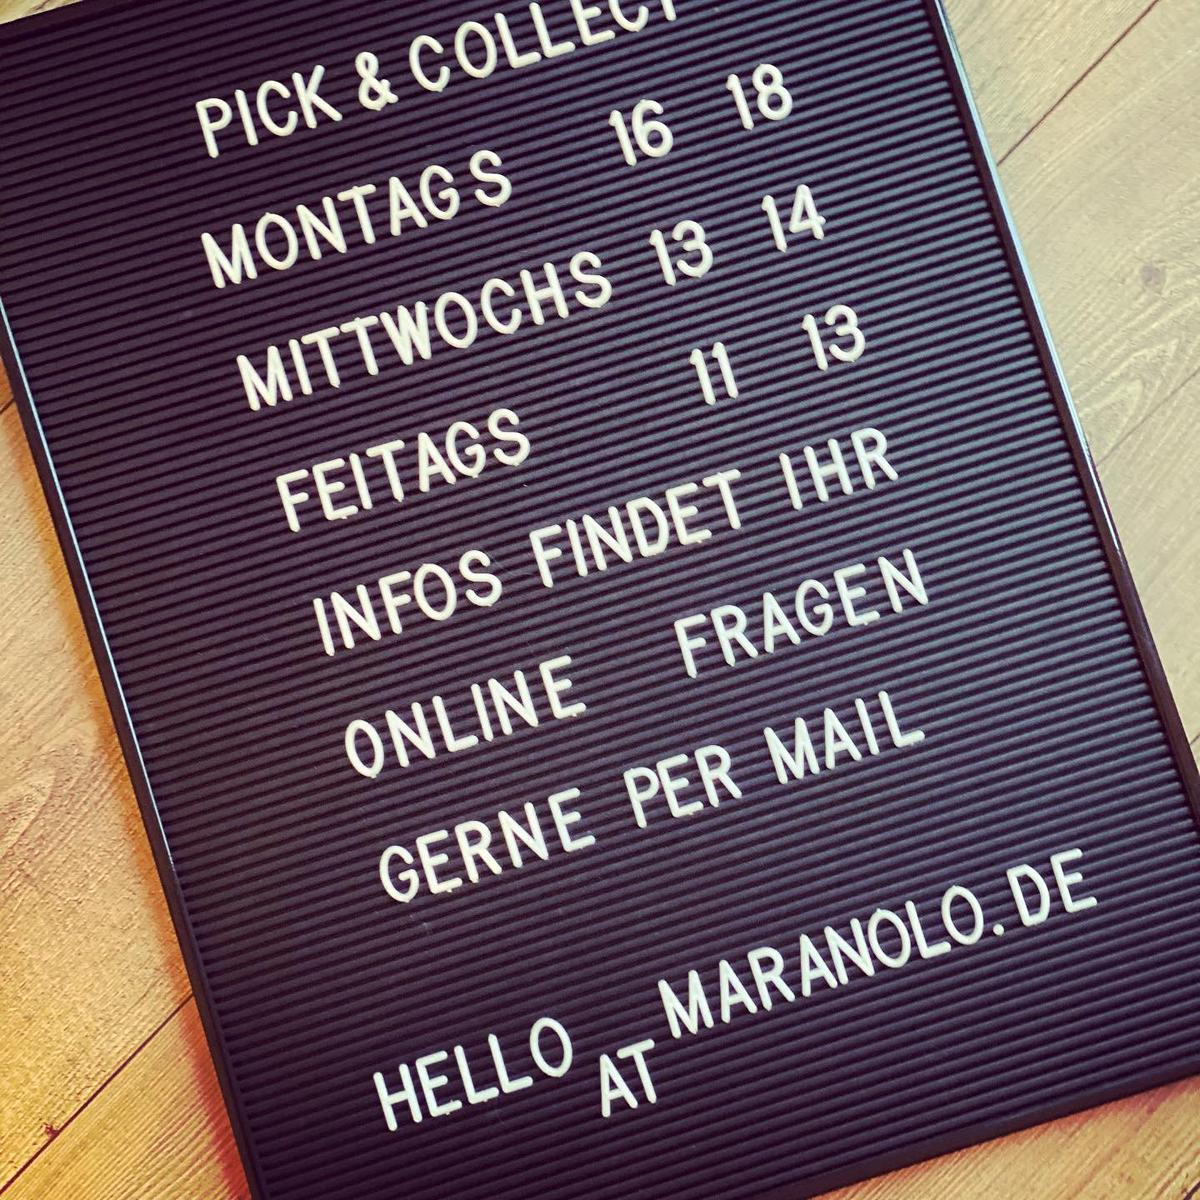 Style hannover maranolo Support your locals - maranolo - Lieferangebot + Click & Collect